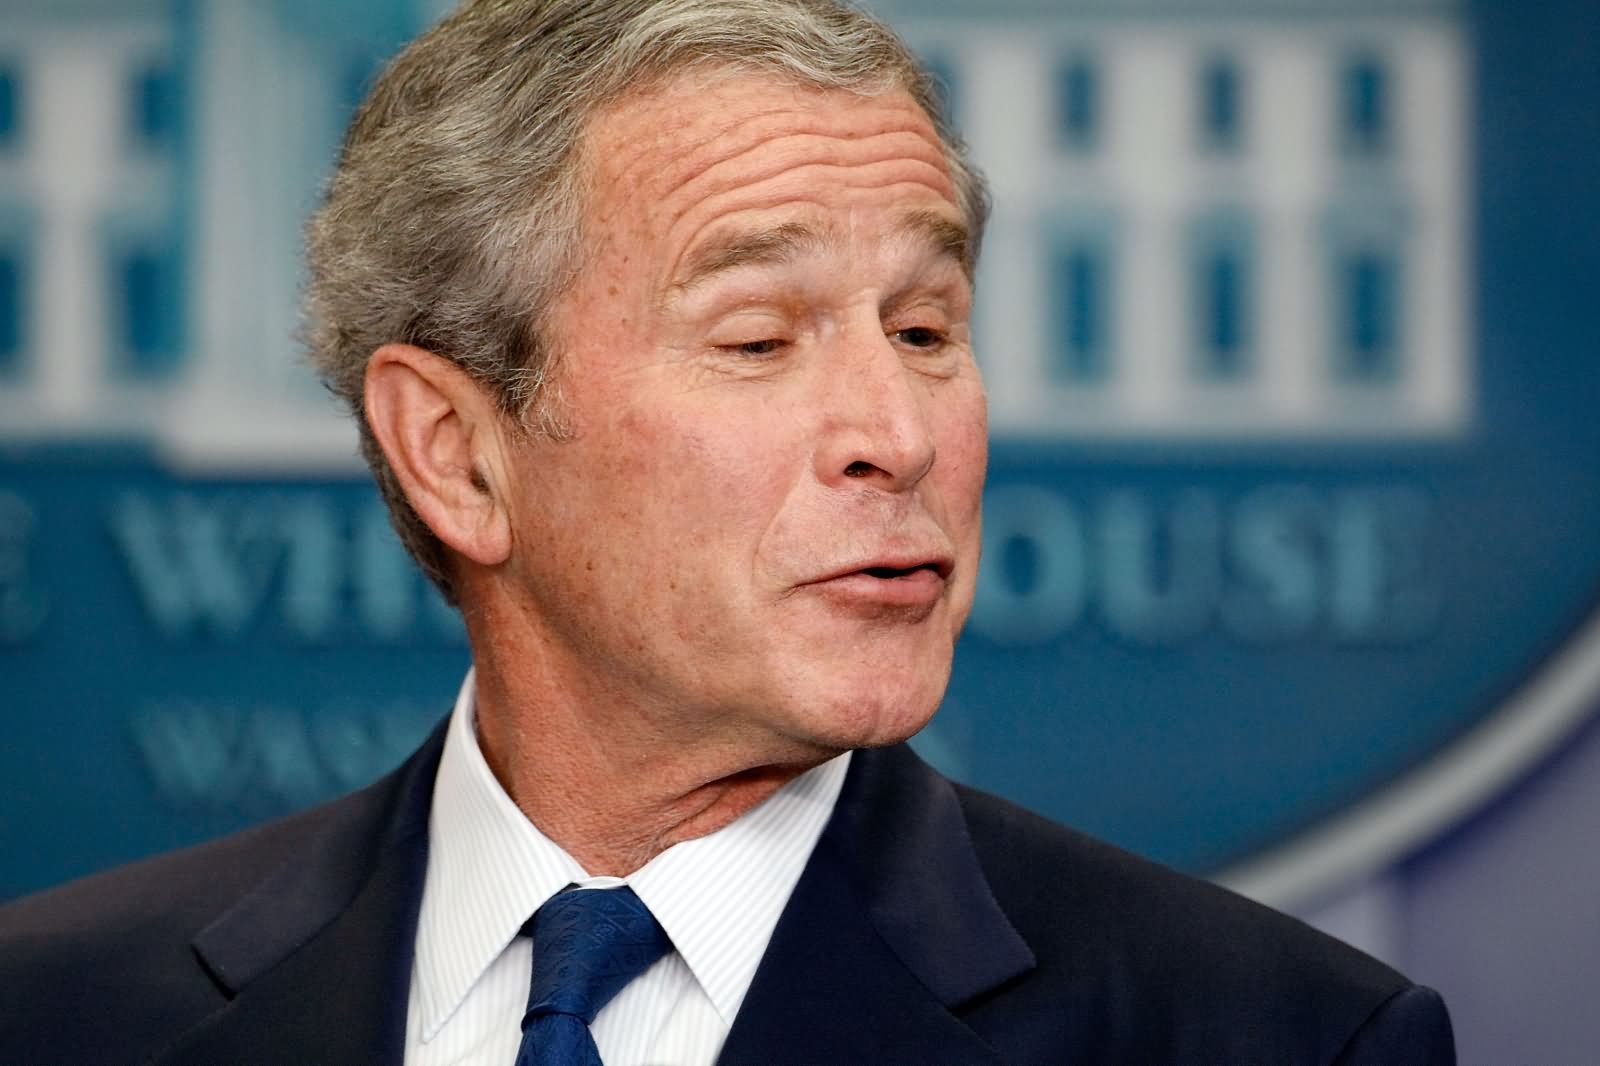 23 Very Funny George Bush Face Pictures And Images That